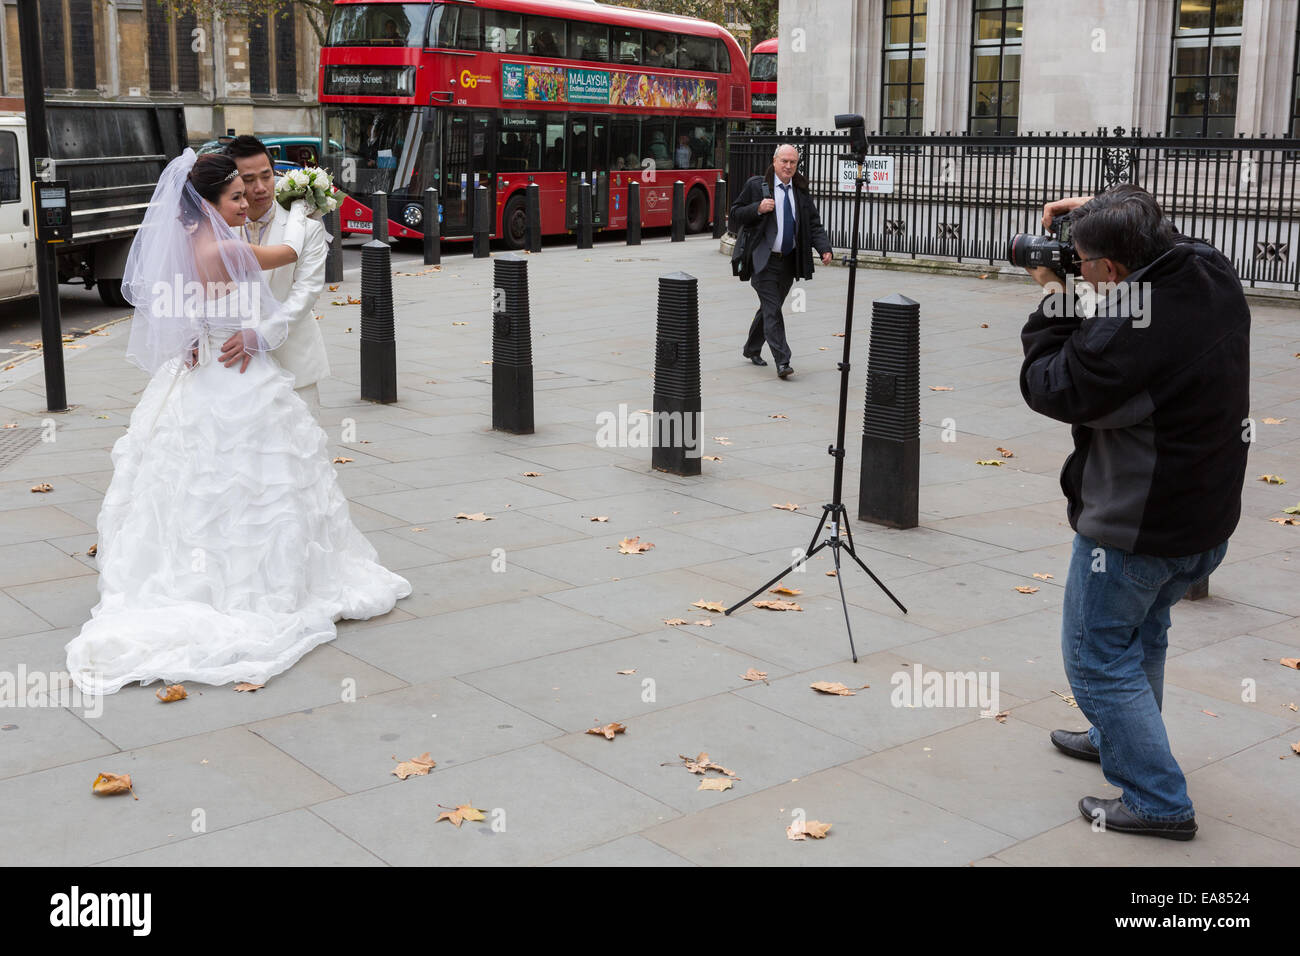 A Chinese couple have wedding photographs taken outside Westminster Abbey in London, England, UK - Stock Image